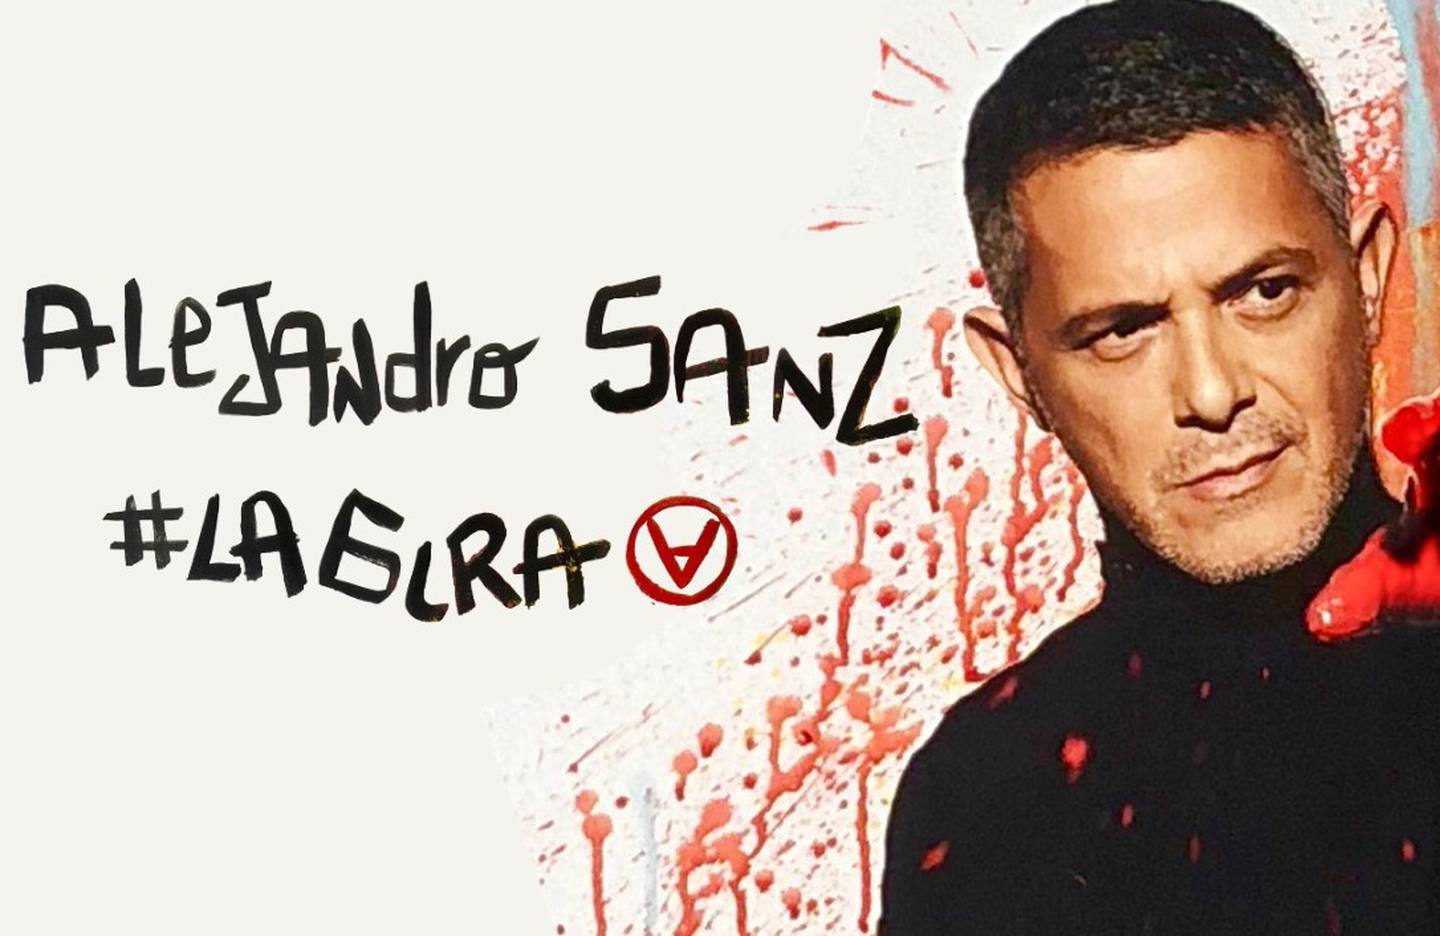 Alejandro Sanz announces that he will give a concert in